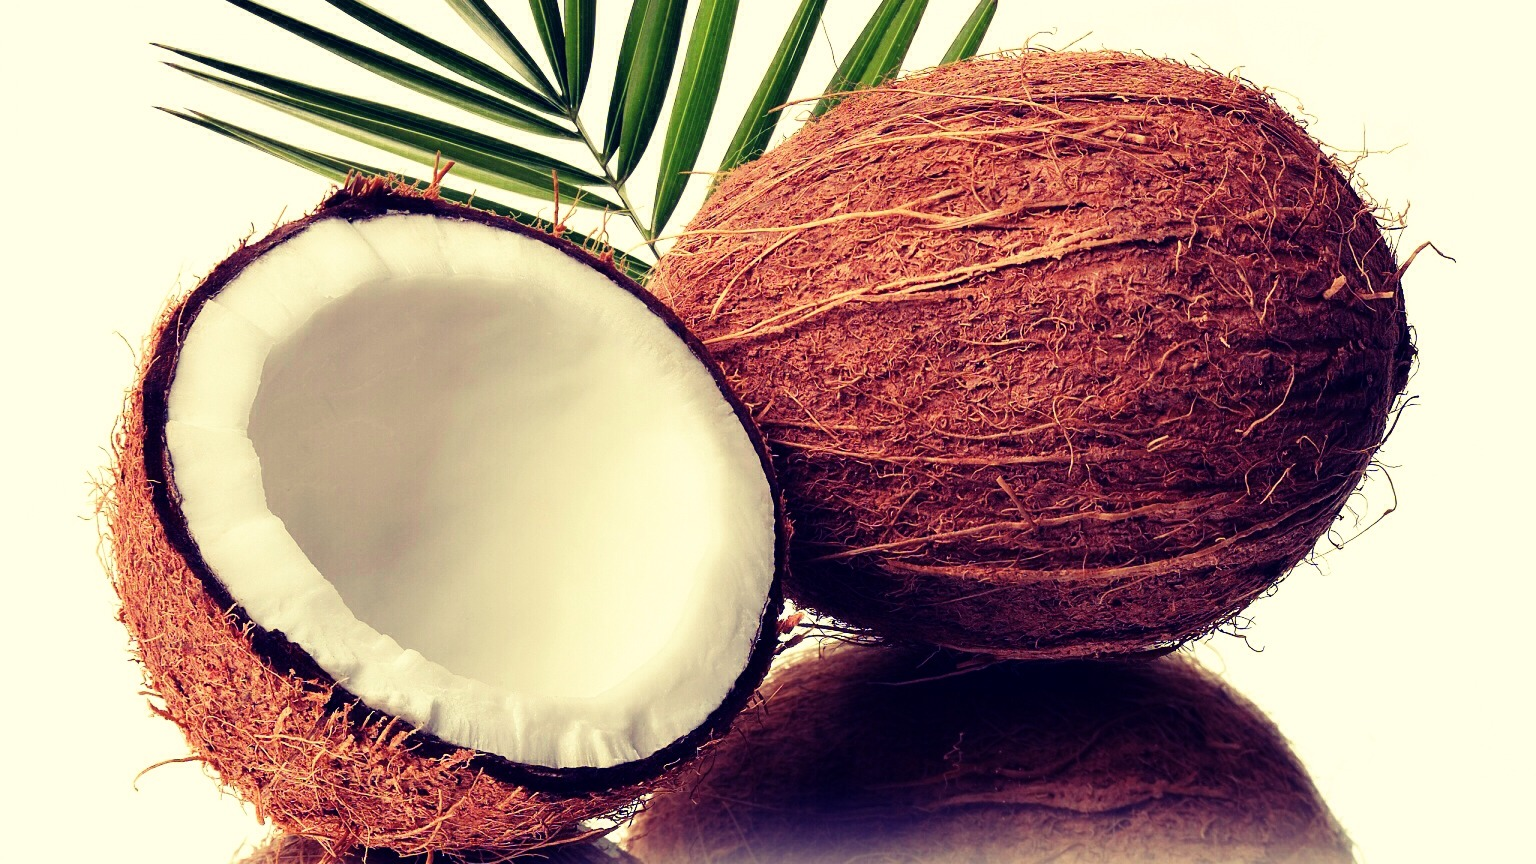 1. Melt the coconut oil at low heat (it melts fast), but don't let it get too hot. If it does DO NOT put it in your hair. Let it cool for a couple minutes. Then pour into your hair. Make sure your hair is completely saturated with the oil.